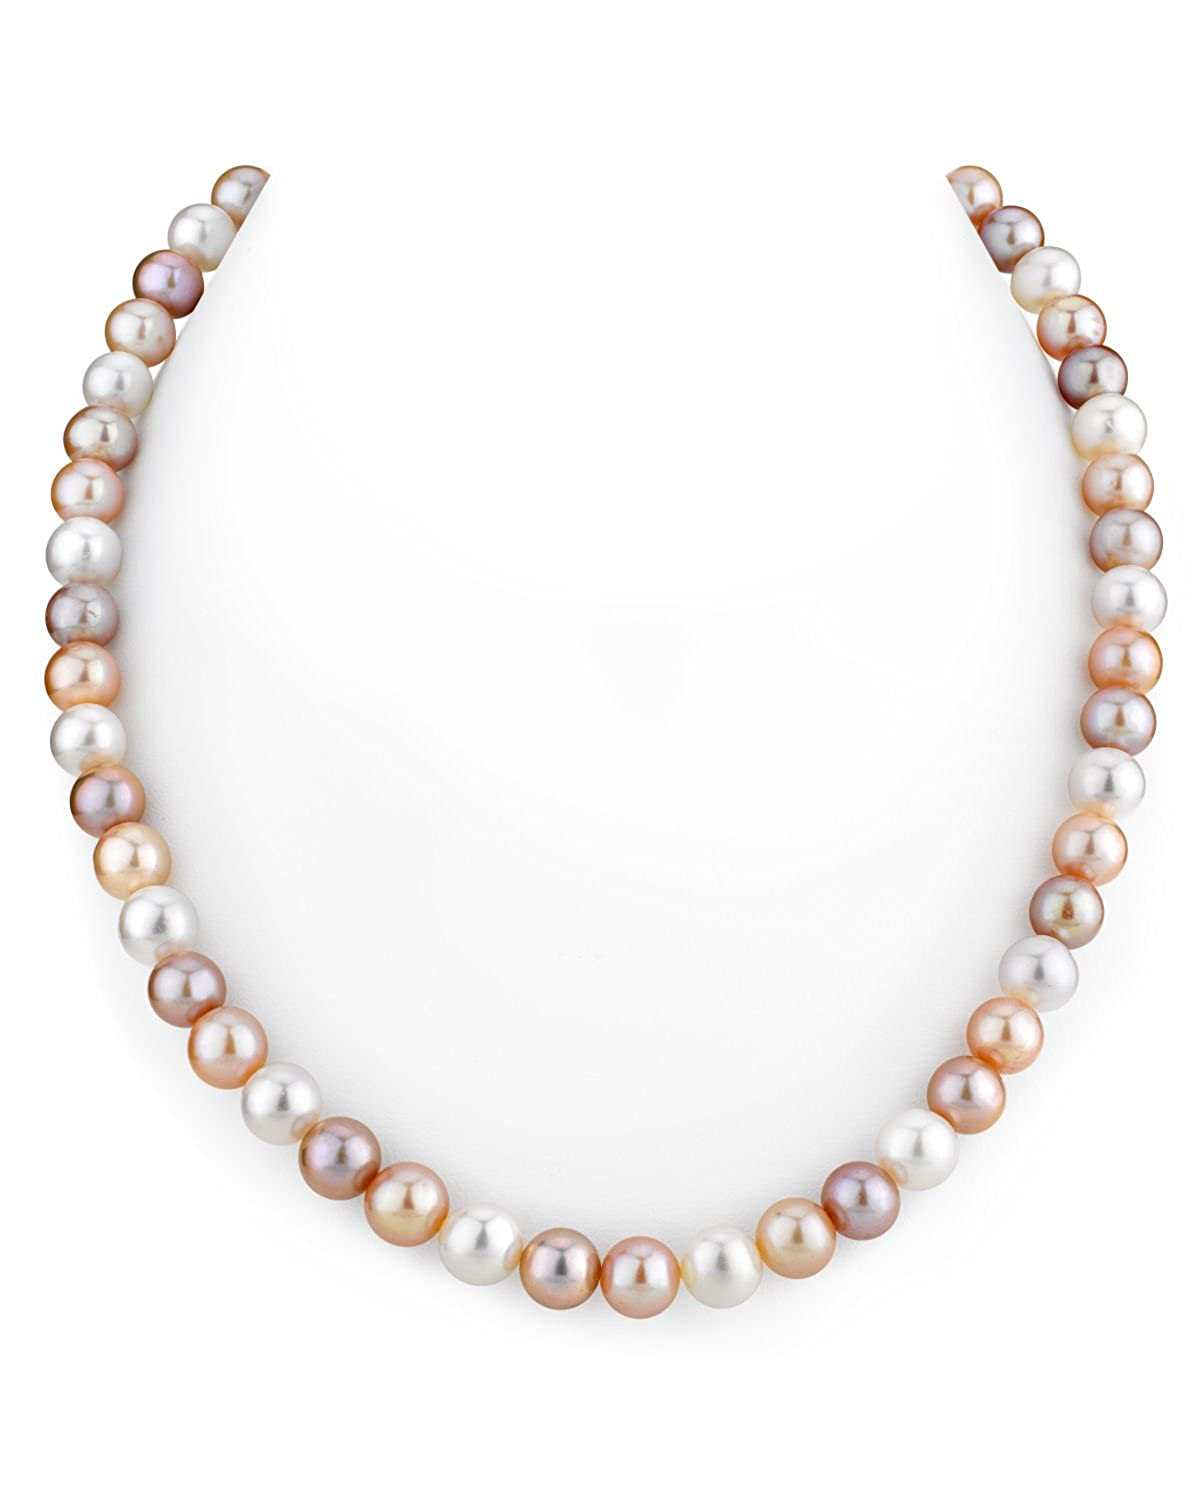 """14K Gold 7-8mm Freshwater Multicolor Cultured Pearl Necklace – AAAA Quality, 18"""" Princess Length"""